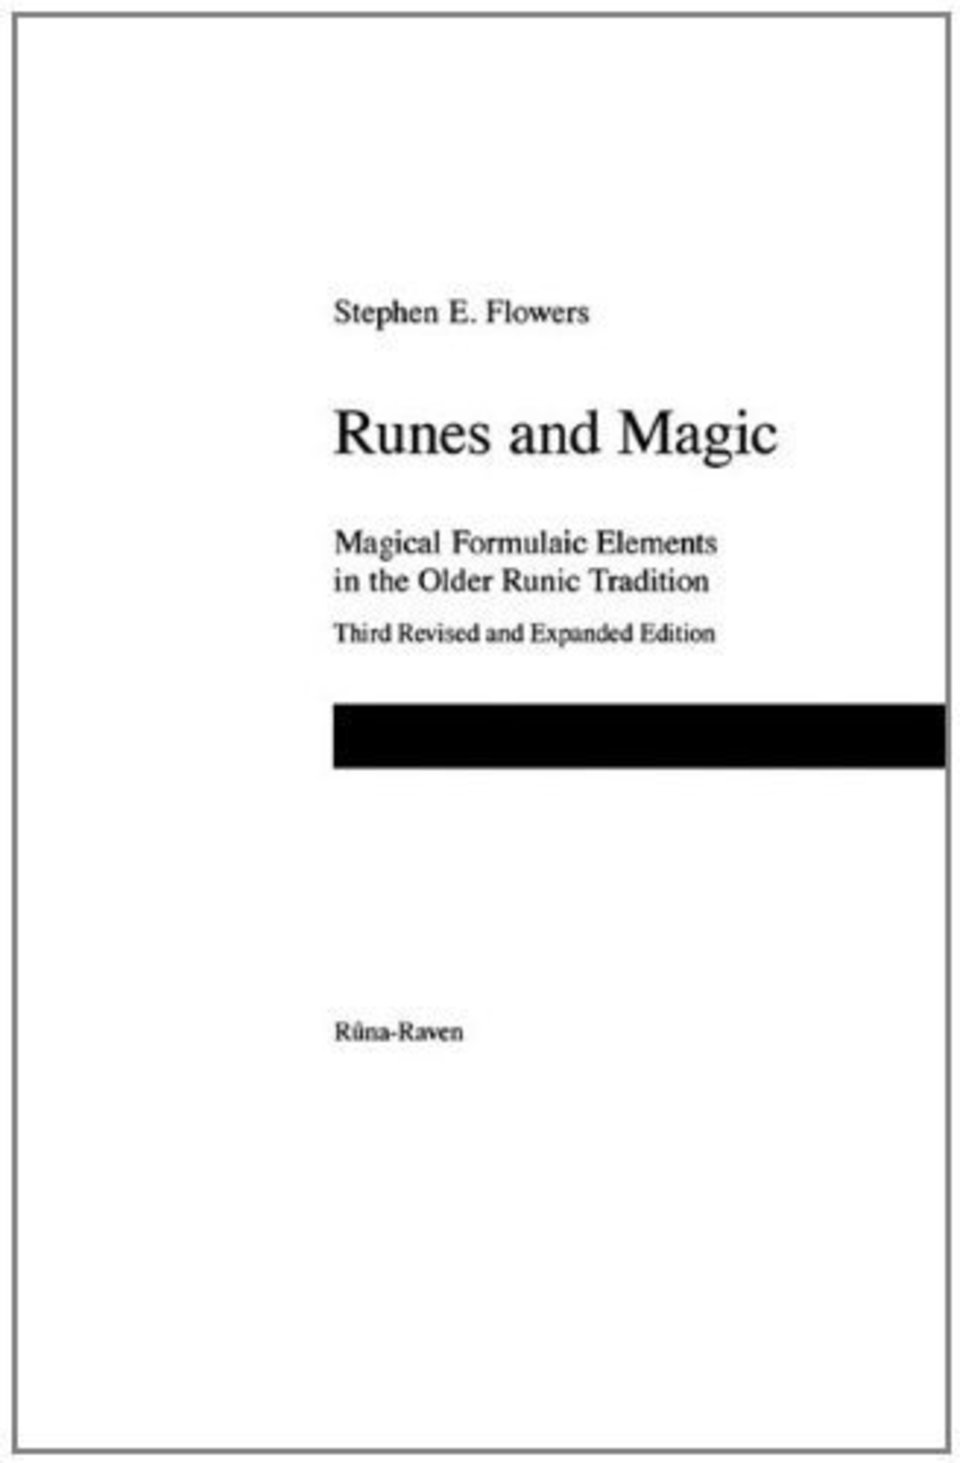 Runes and Magic by Stephen E. Flowers